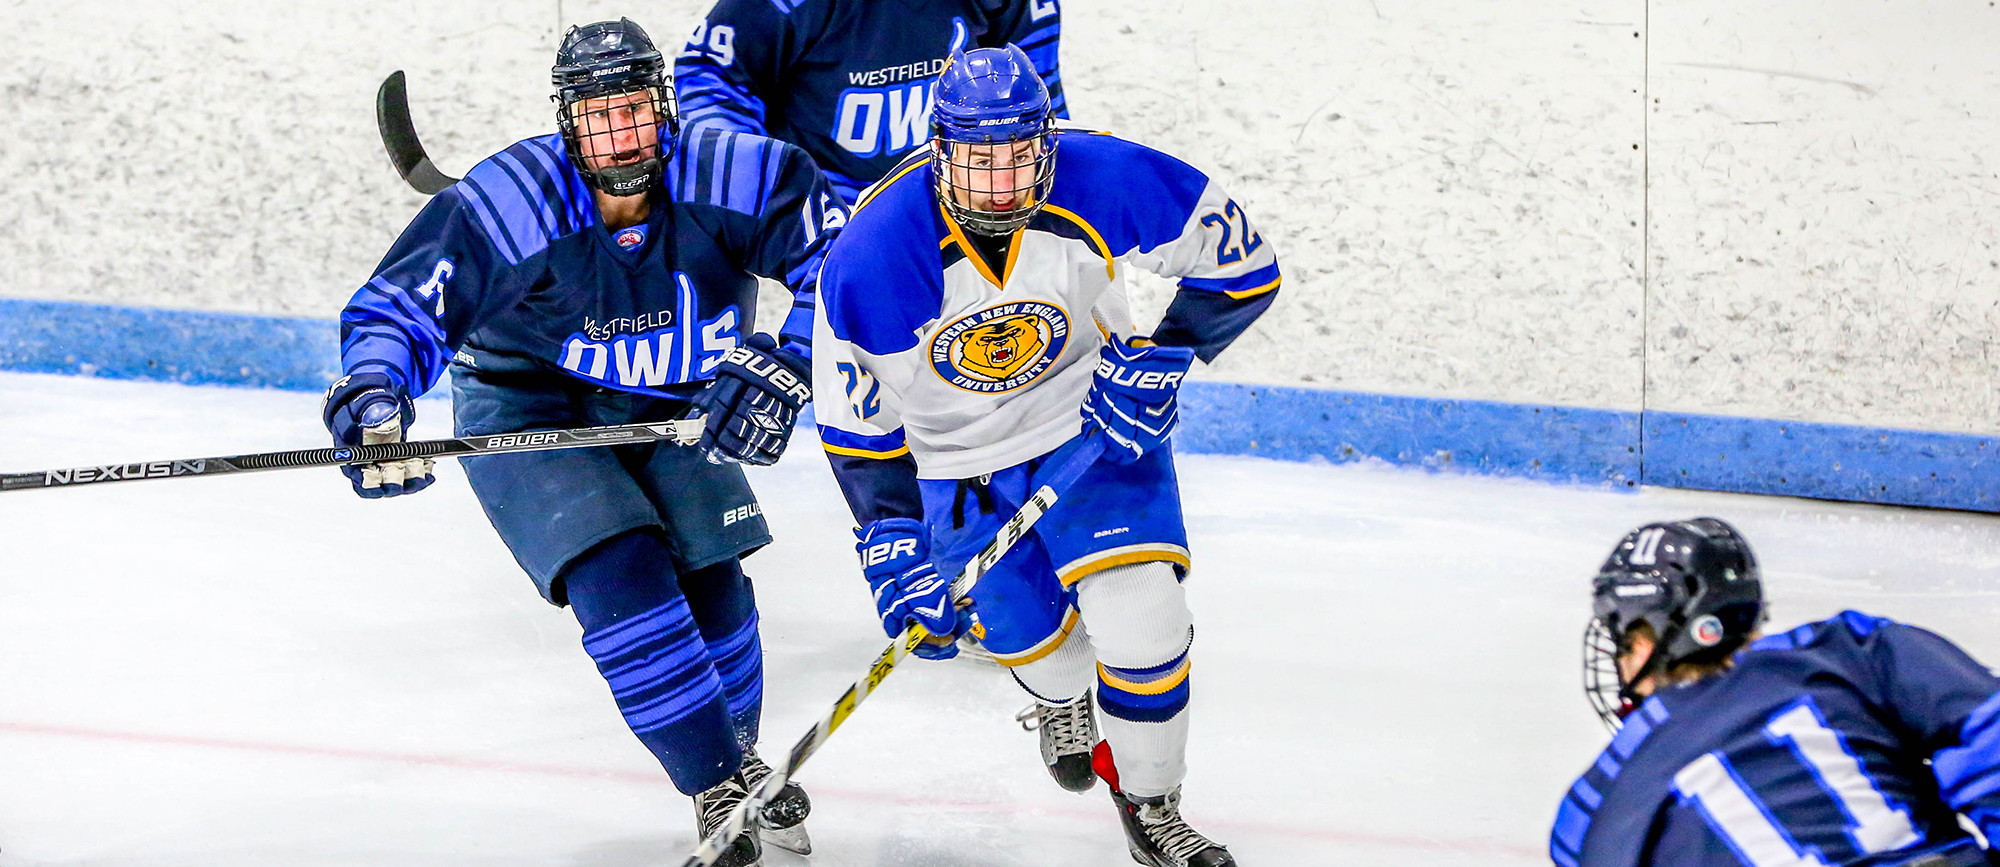 Junior forward Steve Beck factored into all three of Western New England's goals in the Golden Bears' 5-3 loss to Endicott on Friday night (photo by Geoff Riccio).